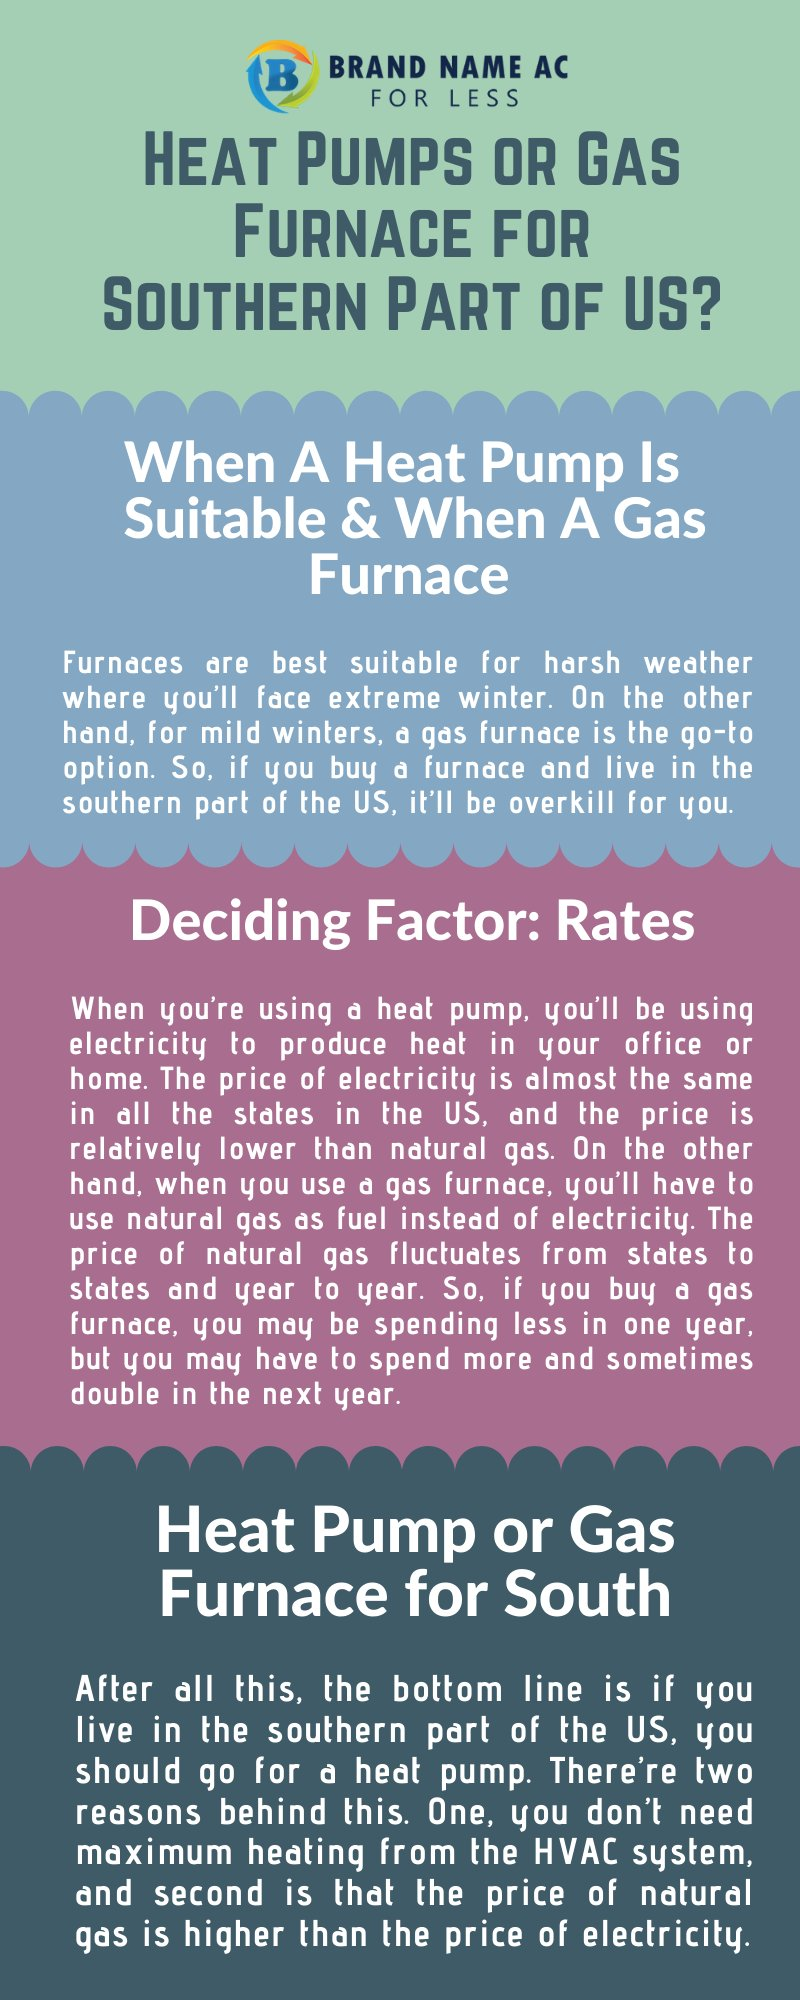 Heat Pump vs Gas Furnace for Southern Parts of US